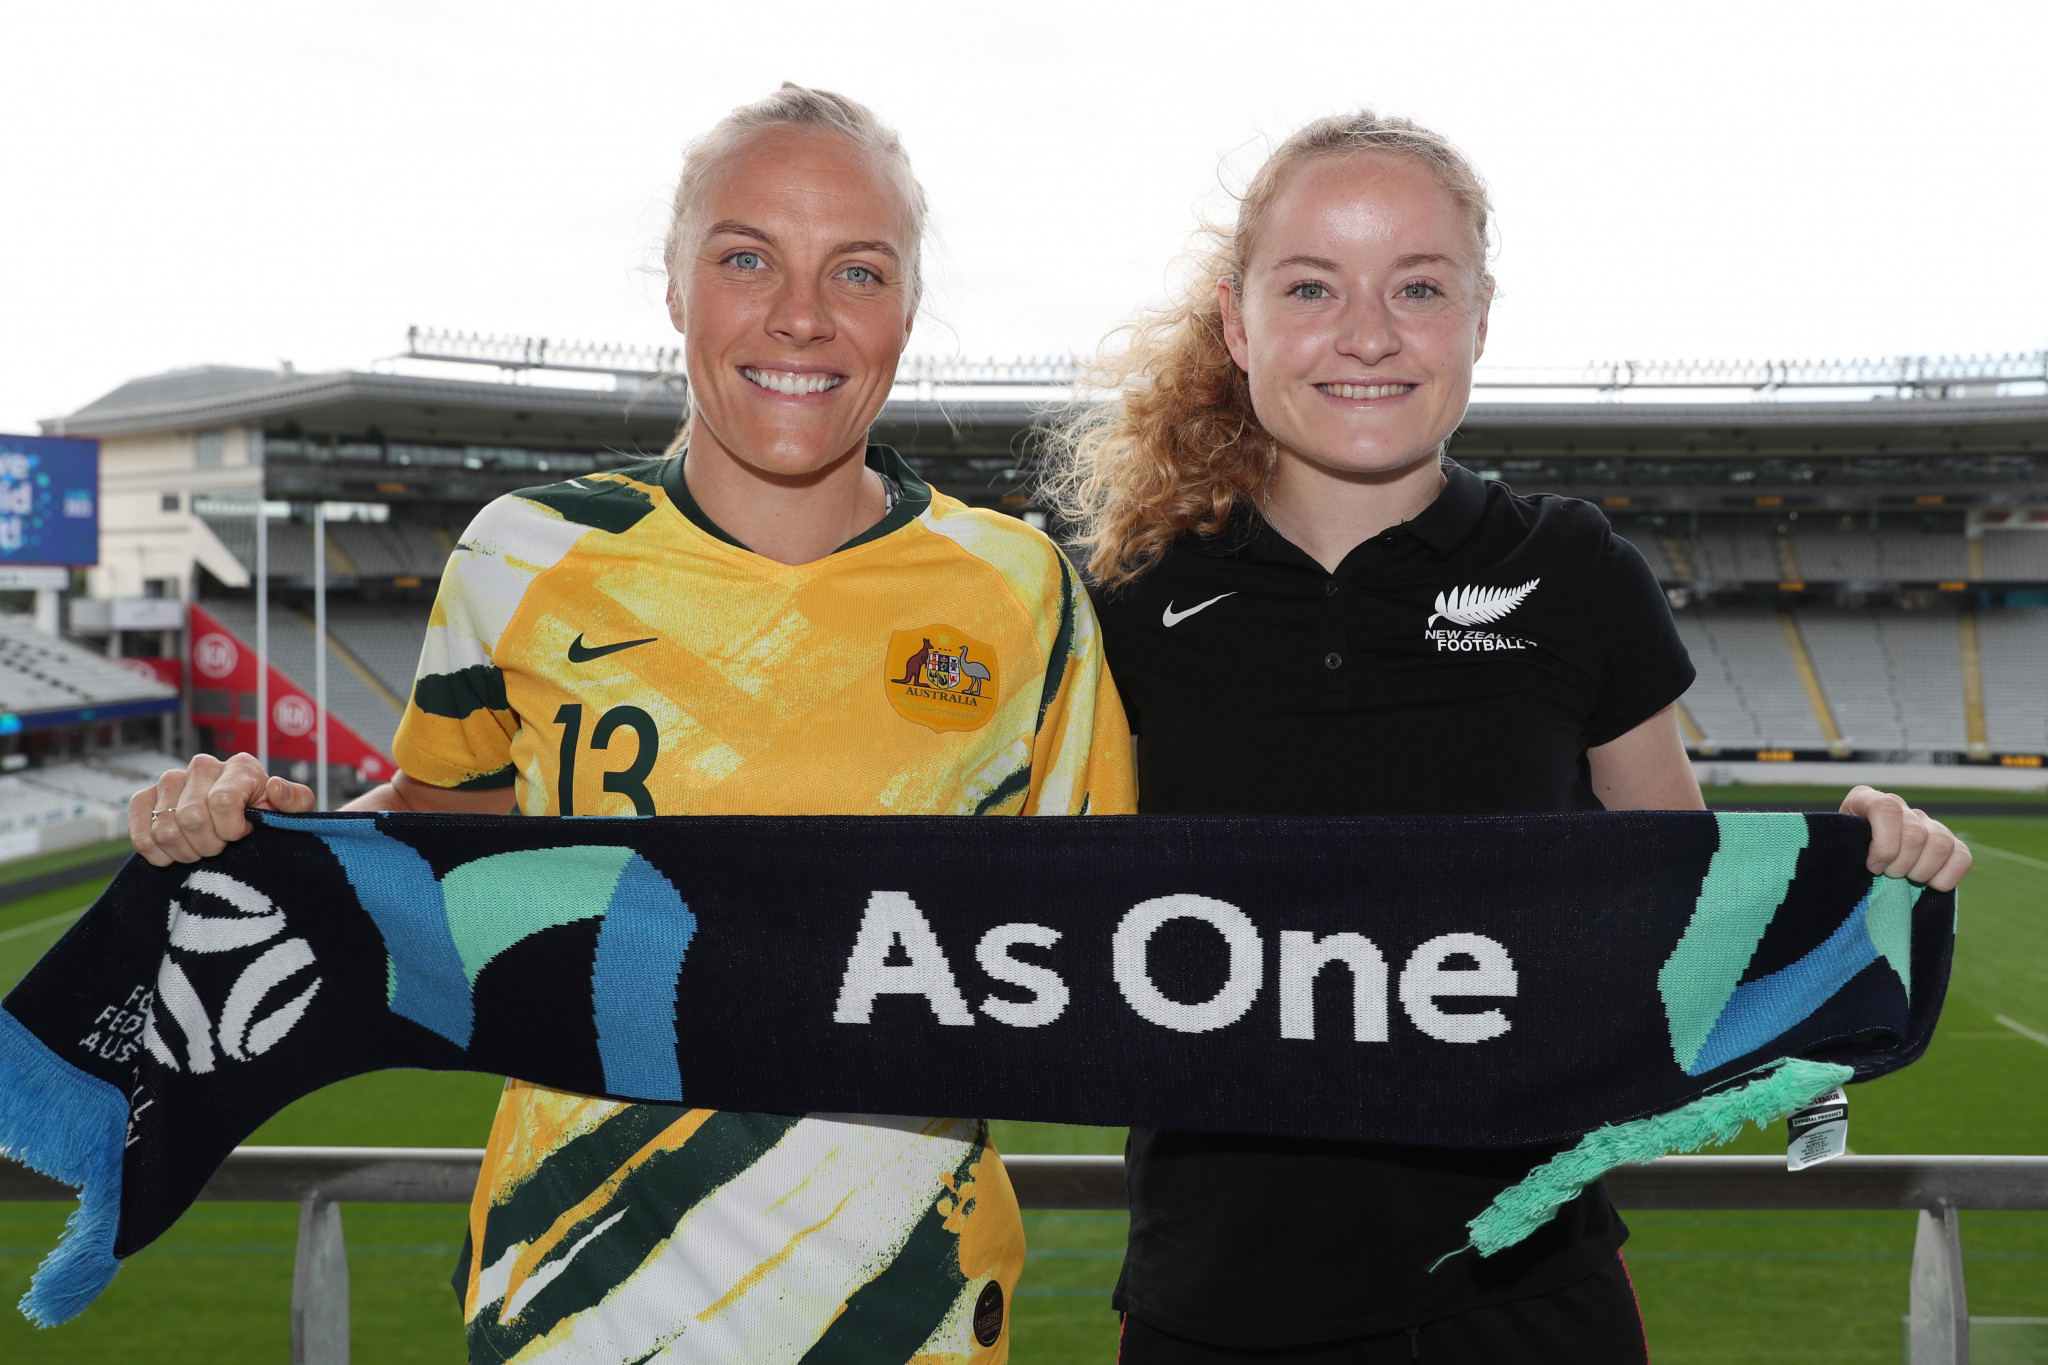 Australia and New Zealand are co-hosts of the 2023 FIFA Women's World Cup, so have already qualified ©Getty Images